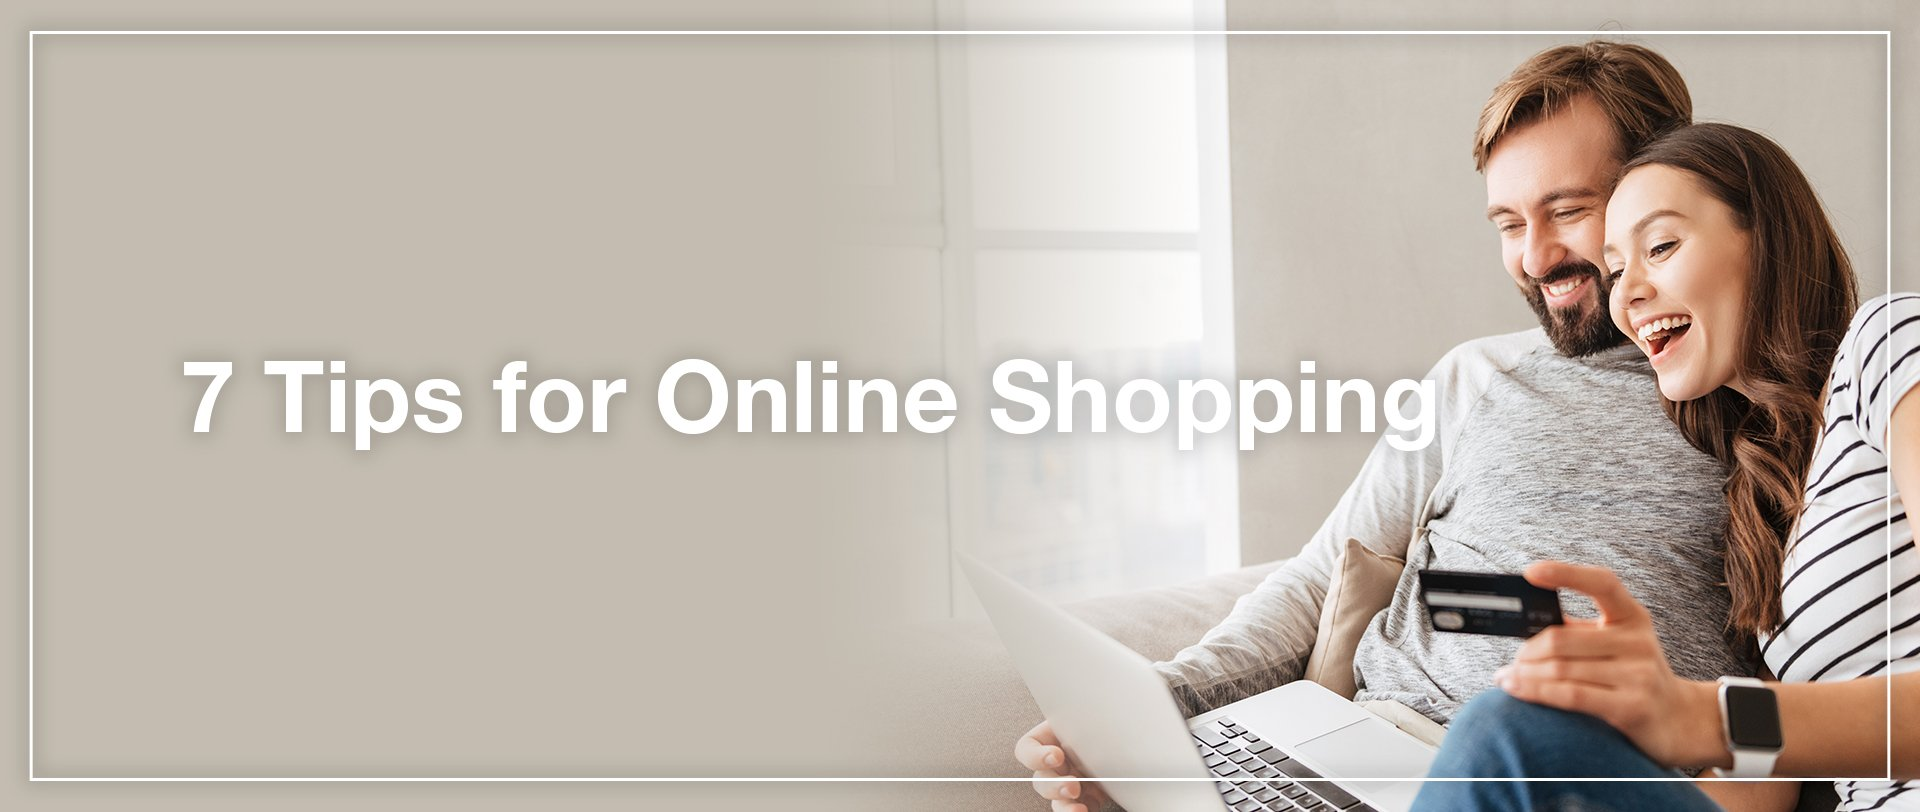 7 Tips for Online Shopping